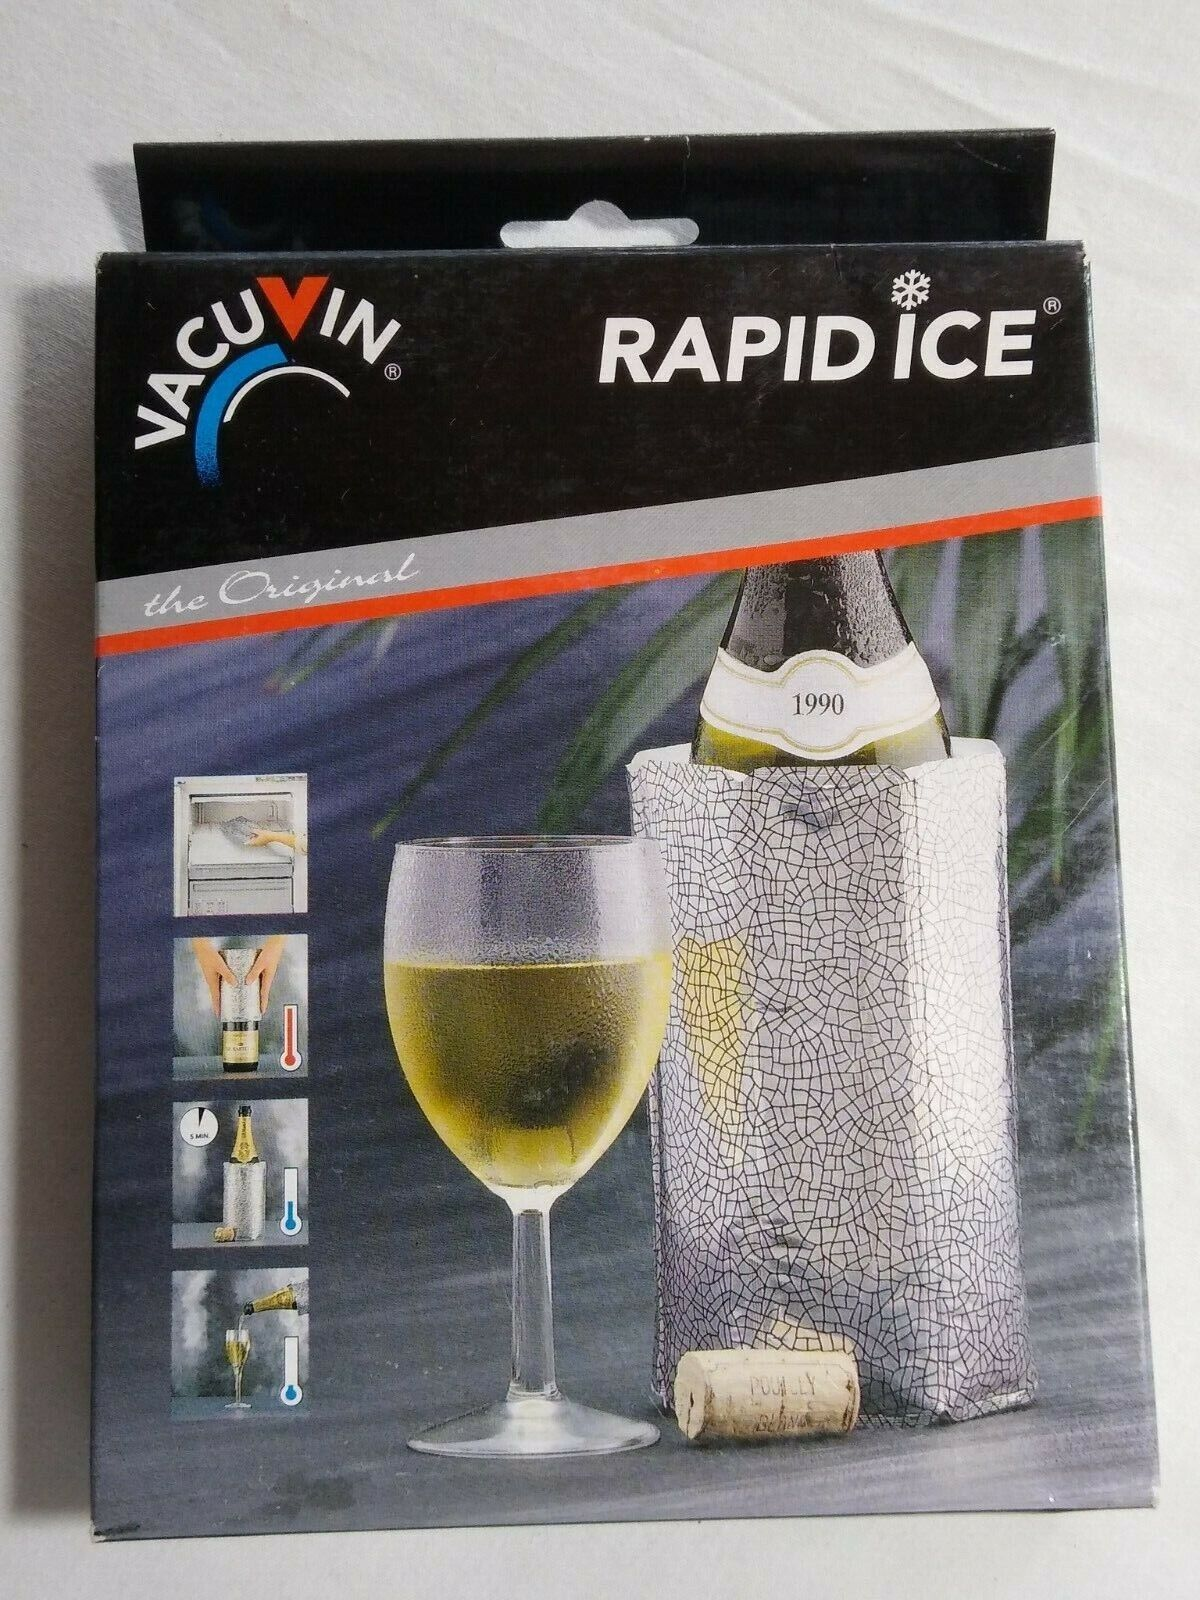 VACU VIN Rapid Ice Active Cooler Wine Champagne Bottle Chill